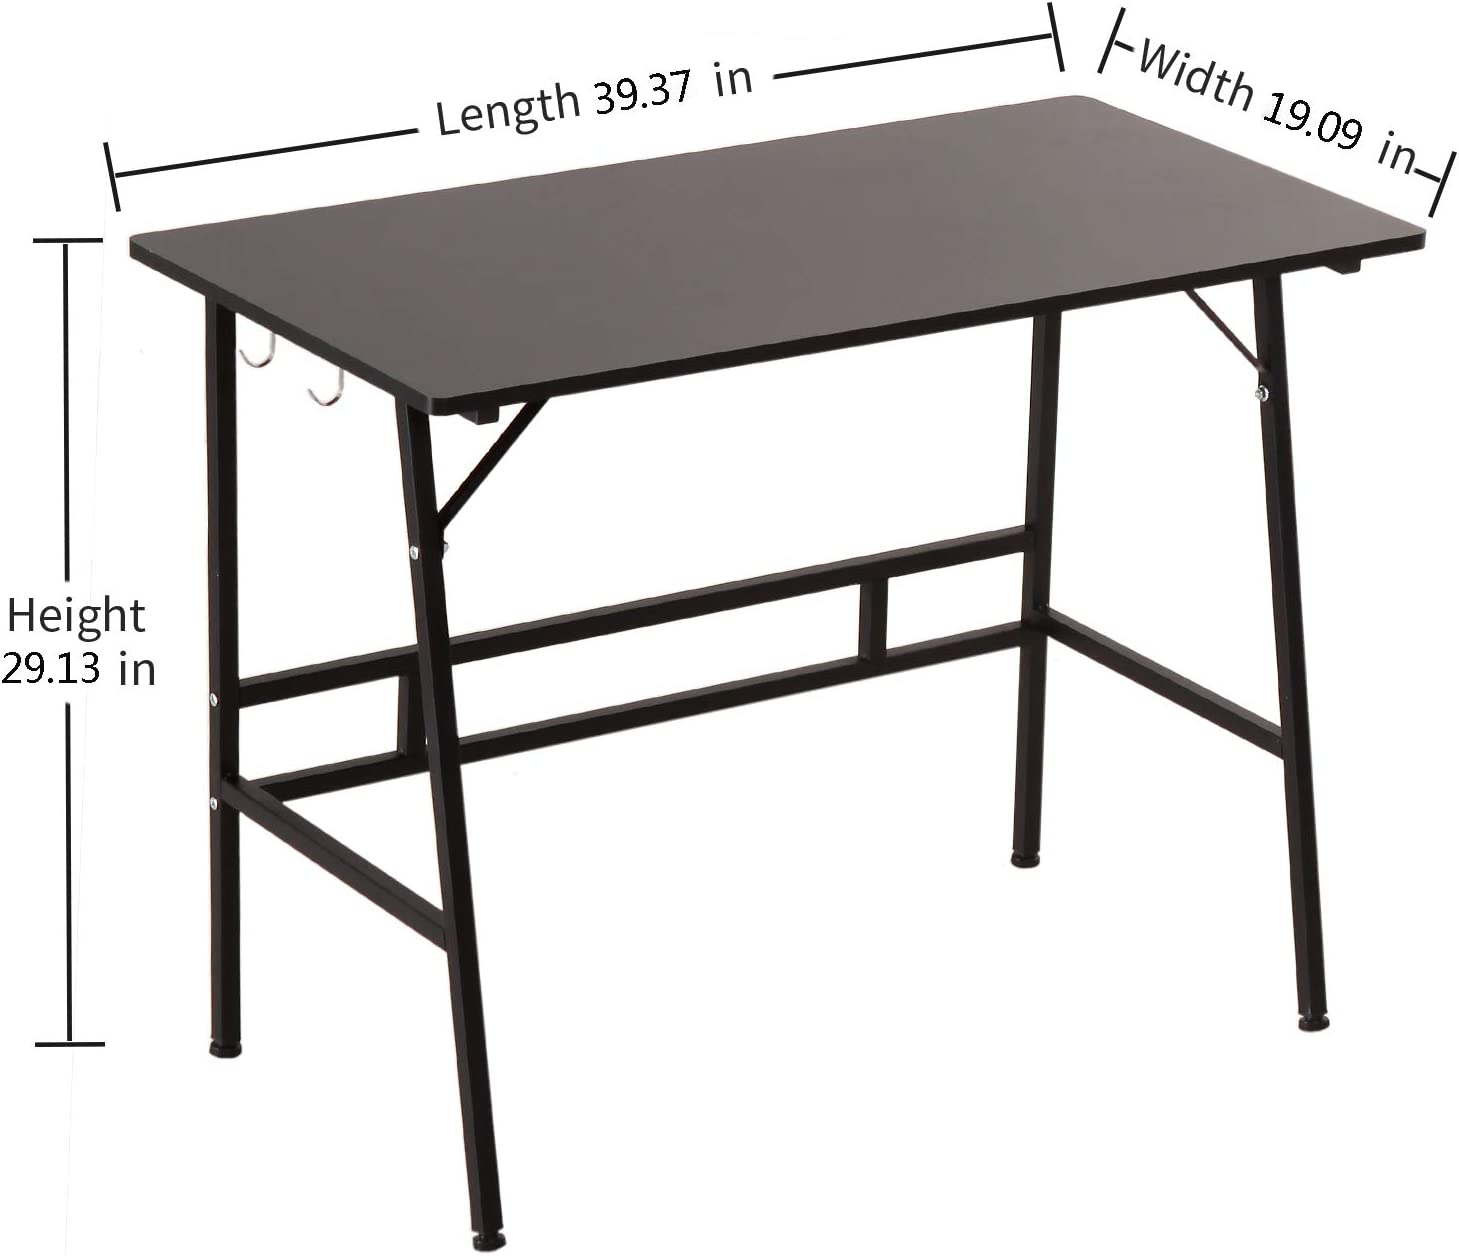 Black NOVII Office Computer Desk Modern Simple Study Desk with Wooden Table top and Sturdy Metal Frame Multifunctional Writing Desk Suitable for Office Living Room Study Bedroom